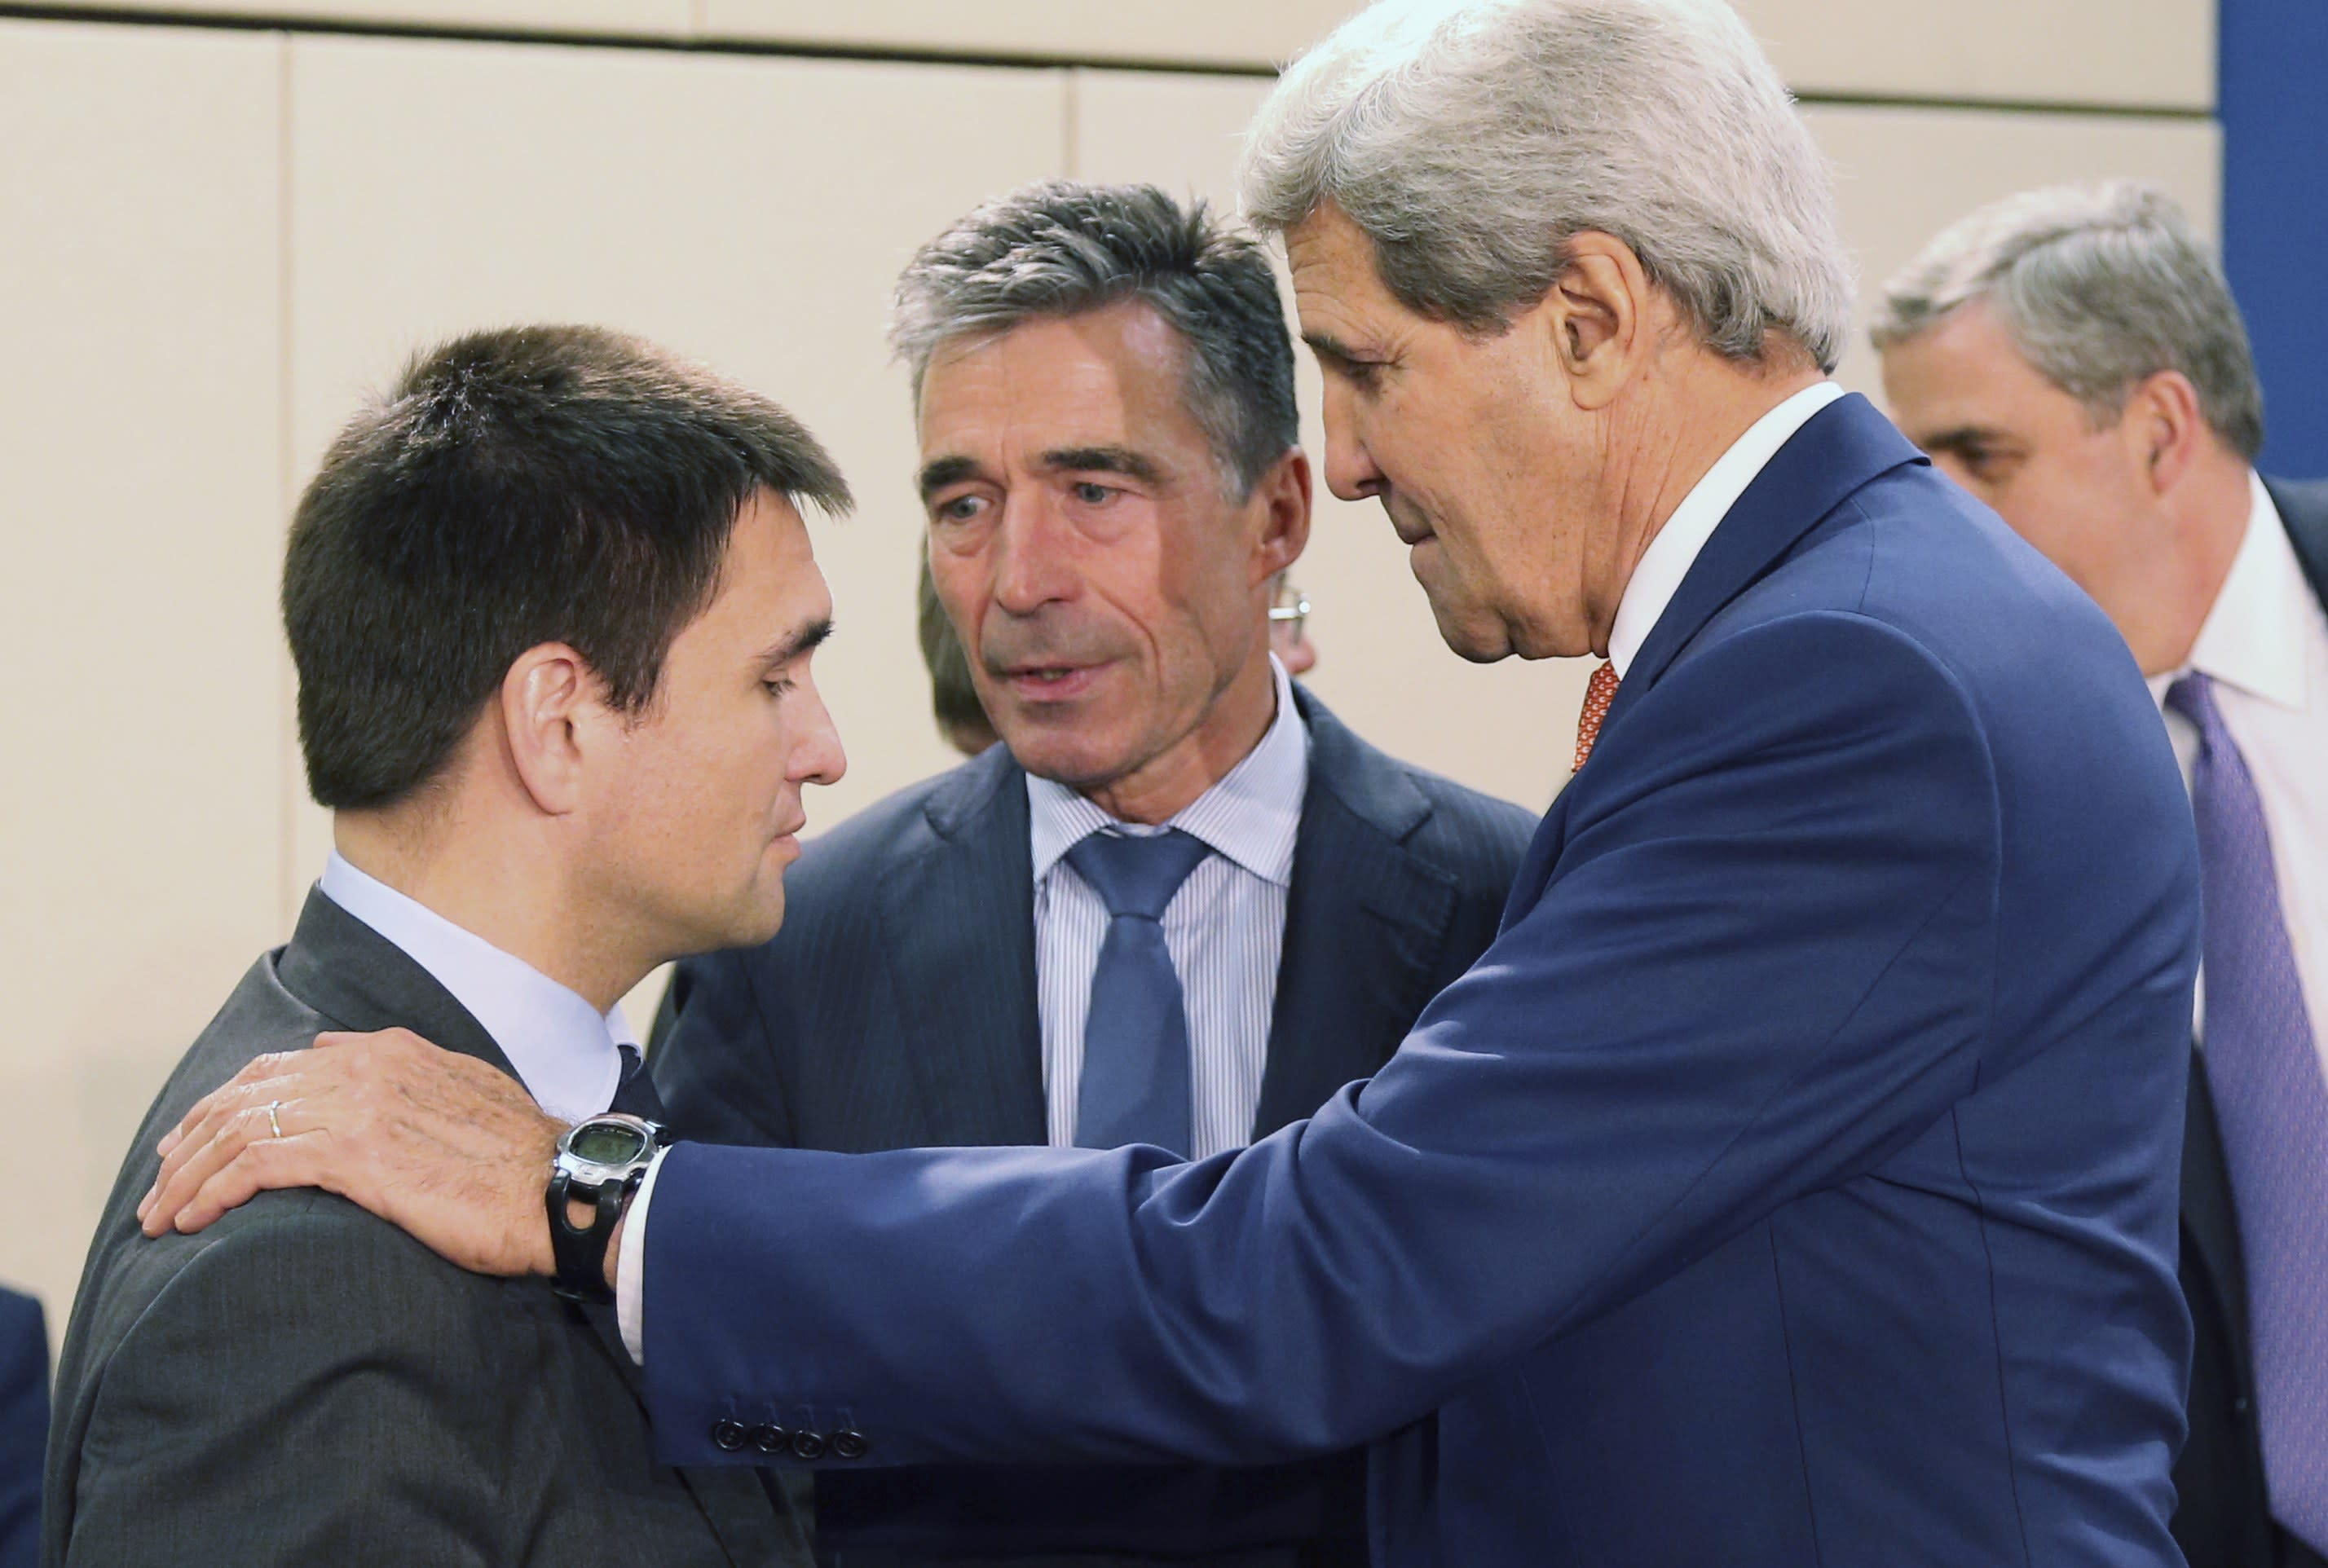 Ukraine's Foreign Minister Pavlo Klimkin (L) listens to U.S. Secretary of State John Kerry (R) and NATO Secretary General Anders Fogh Rasmussen during a NATO-Ukraine foreign ministers meeting at the Alliance headquarters in Brussels June 25, 2014. REUTERS/Francois Lenoir (BELGIUM - Tags: POLITICS MILITARY)